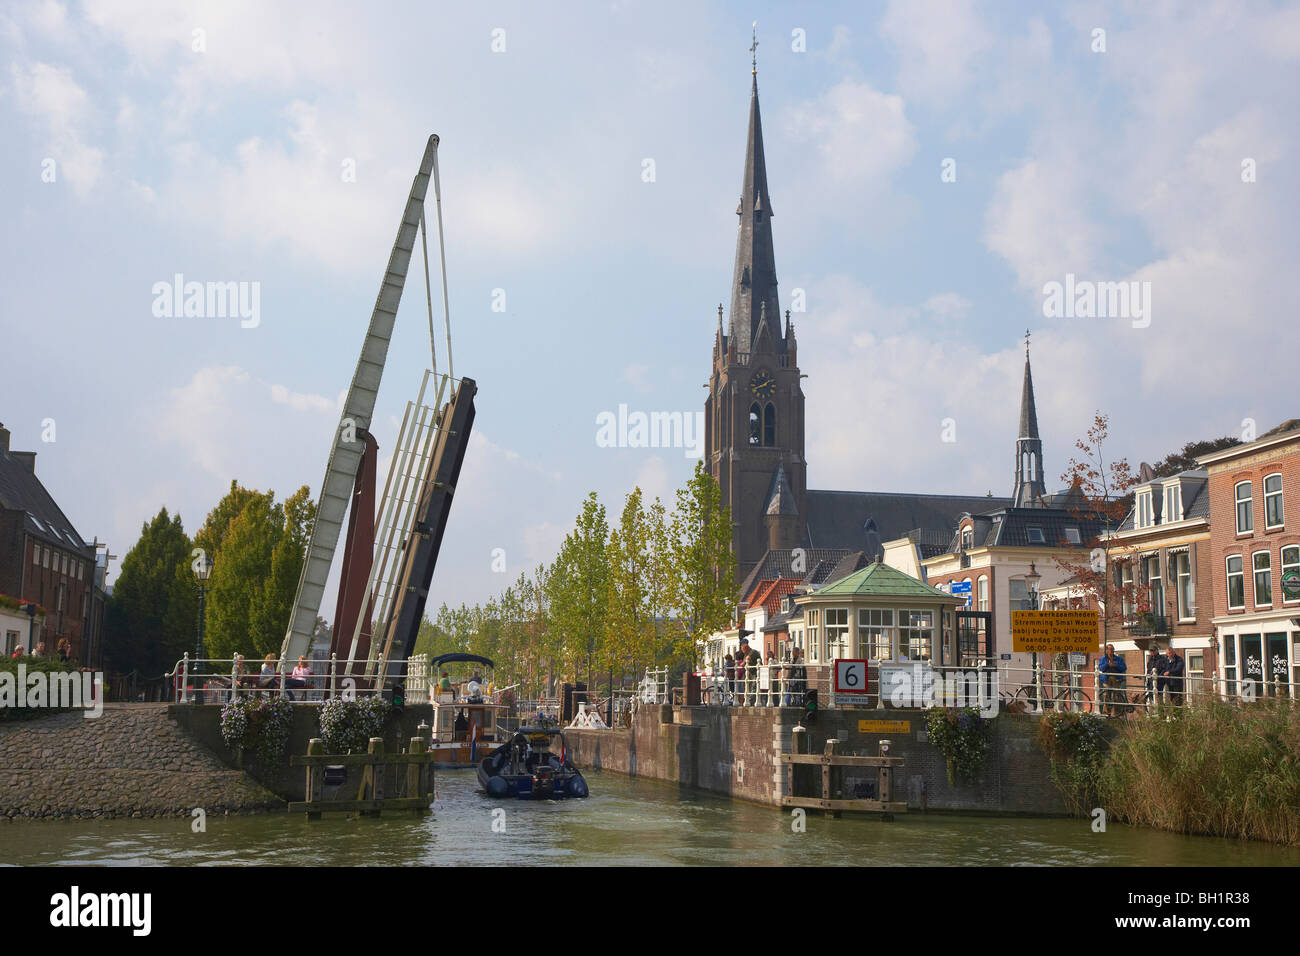 A boat driving past a bascule bridge on the river Smal Weesp at Weesp, Netherlands, Europe - Stock Image